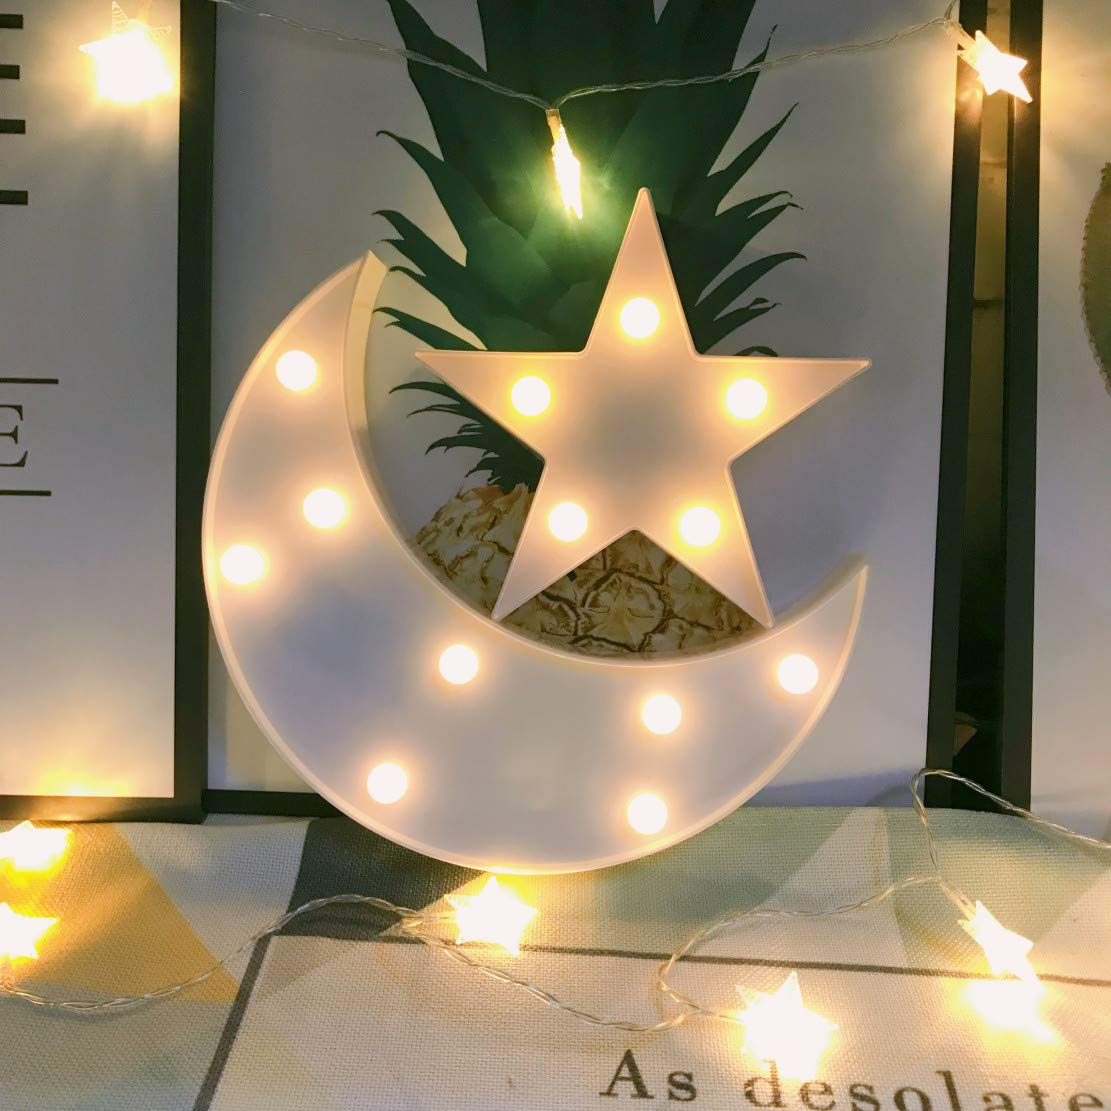 Decorative Moon-star Night Light,Cute LED Nursery Night Lamp Gift-Marquee Moon-star Sign for Birthday party,Baby shower,Kids Room, Living Room Decor(white)